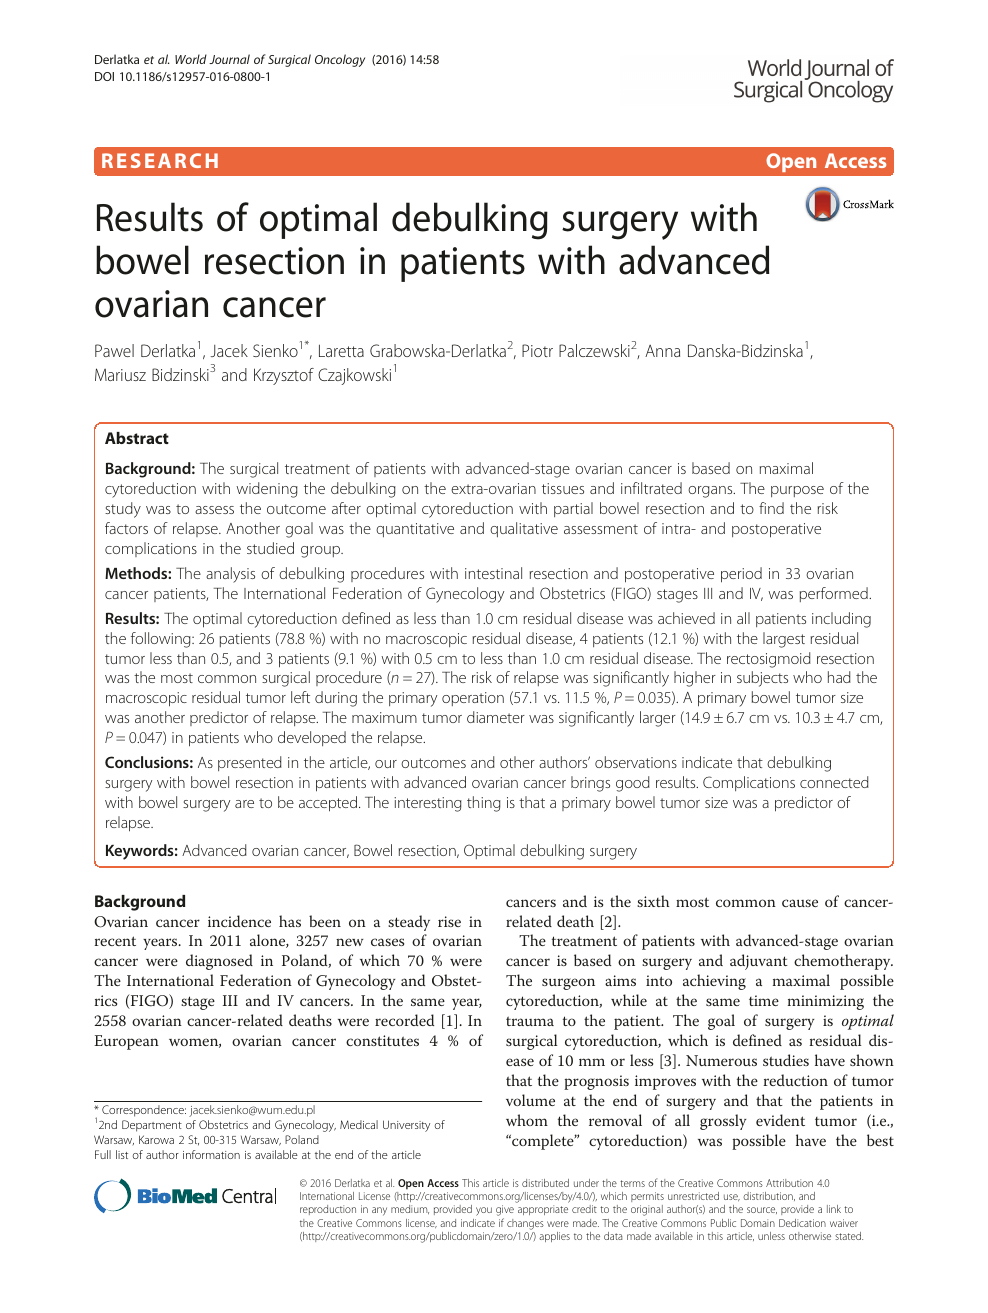 Results Of Optimal Debulking Surgery With Bowel Resection In Patients With Advanced Ovarian Cancer Topic Of Research Paper In Clinical Medicine Download Scholarly Article Pdf And Read For Free On Cyberleninka